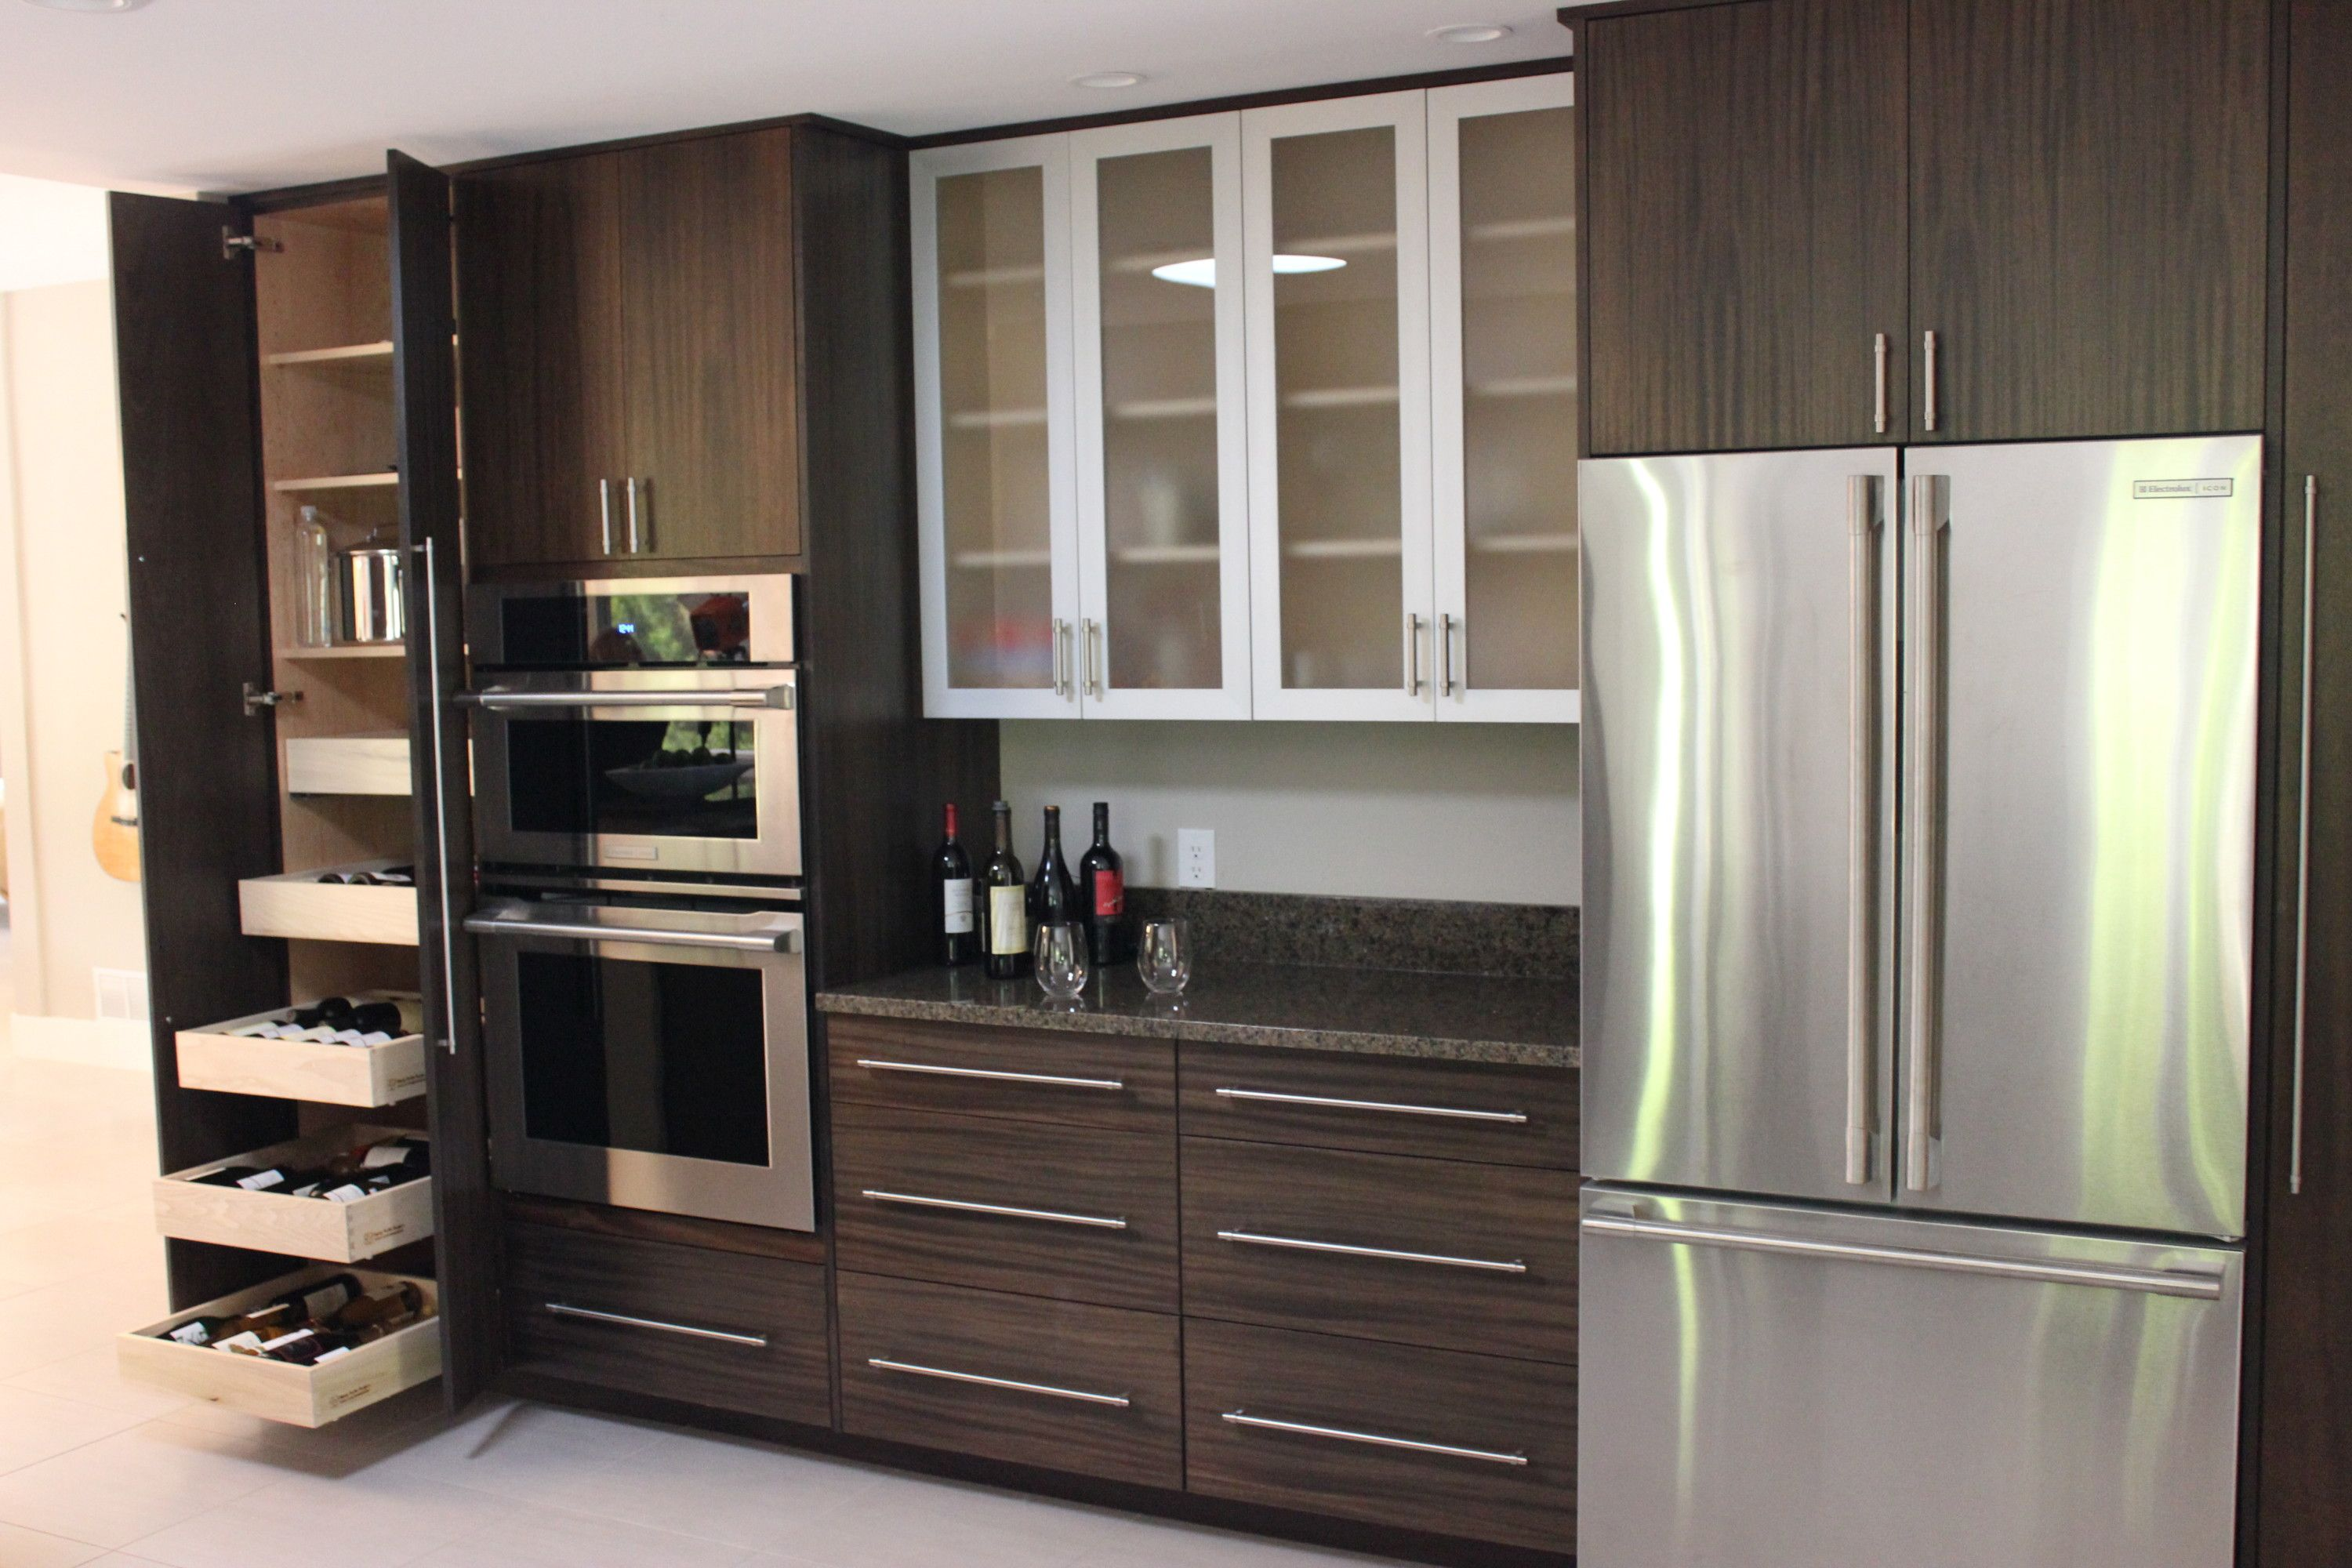 Modern Build In Pictures Of Drawers Cabinets For Kitchens Captivating Kitchen Cupboard Design Software Design Inspiration